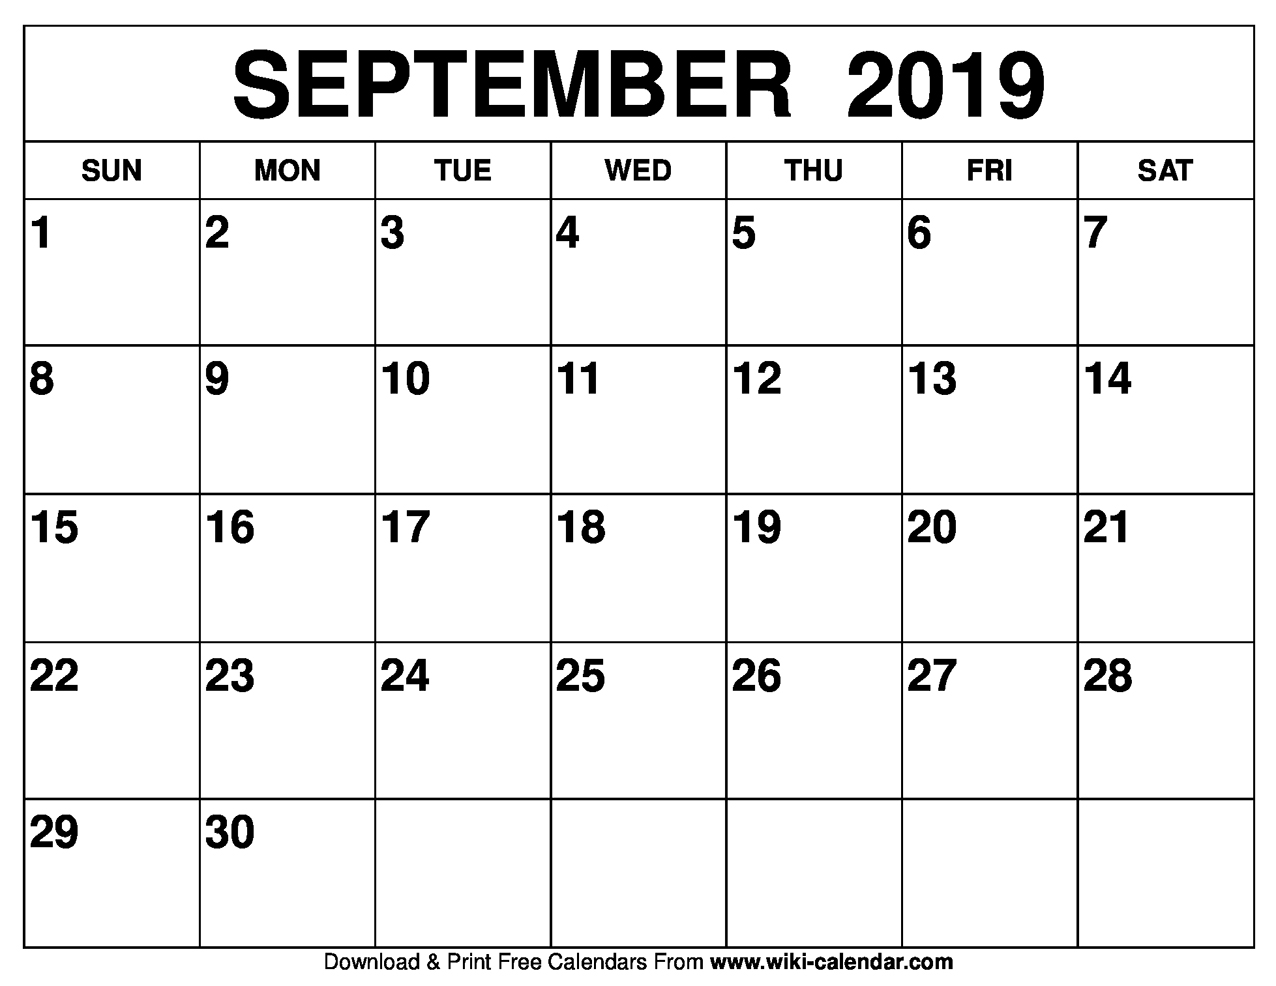 photo relating to September Printable Calendar named Totally free Printable September 2019 Calendar